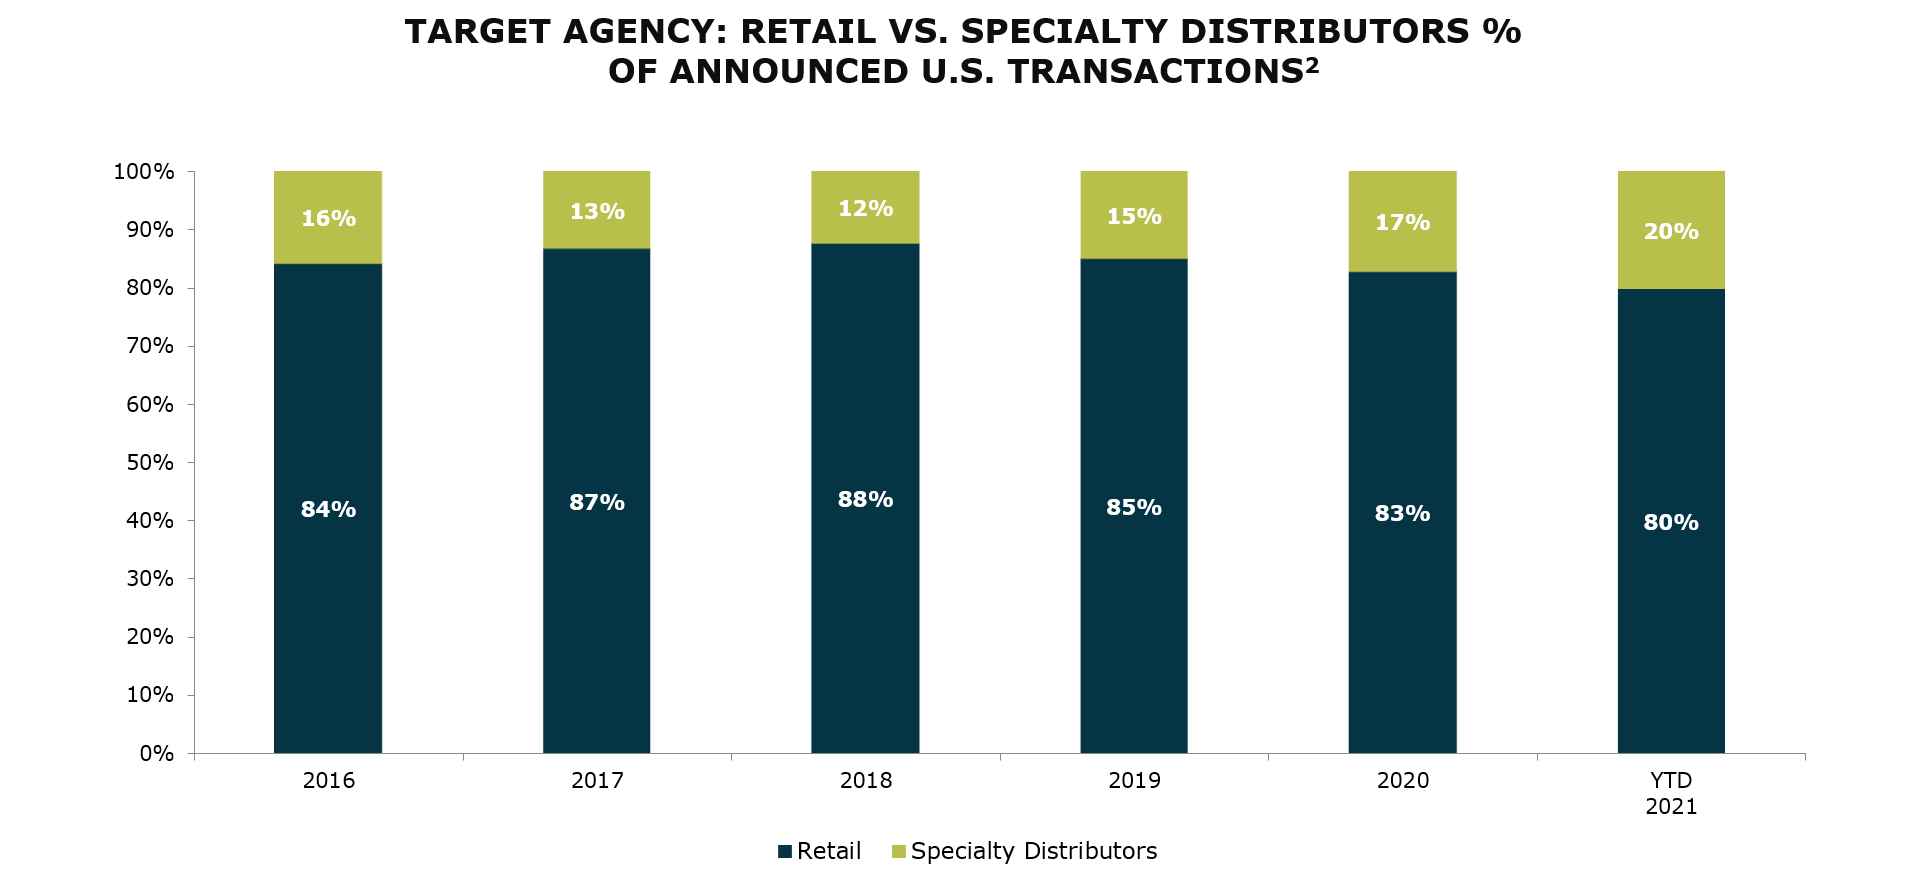 Target Agency - Retail Vs Specialty Distributors Percentage of Announced U.S. Transactions-2